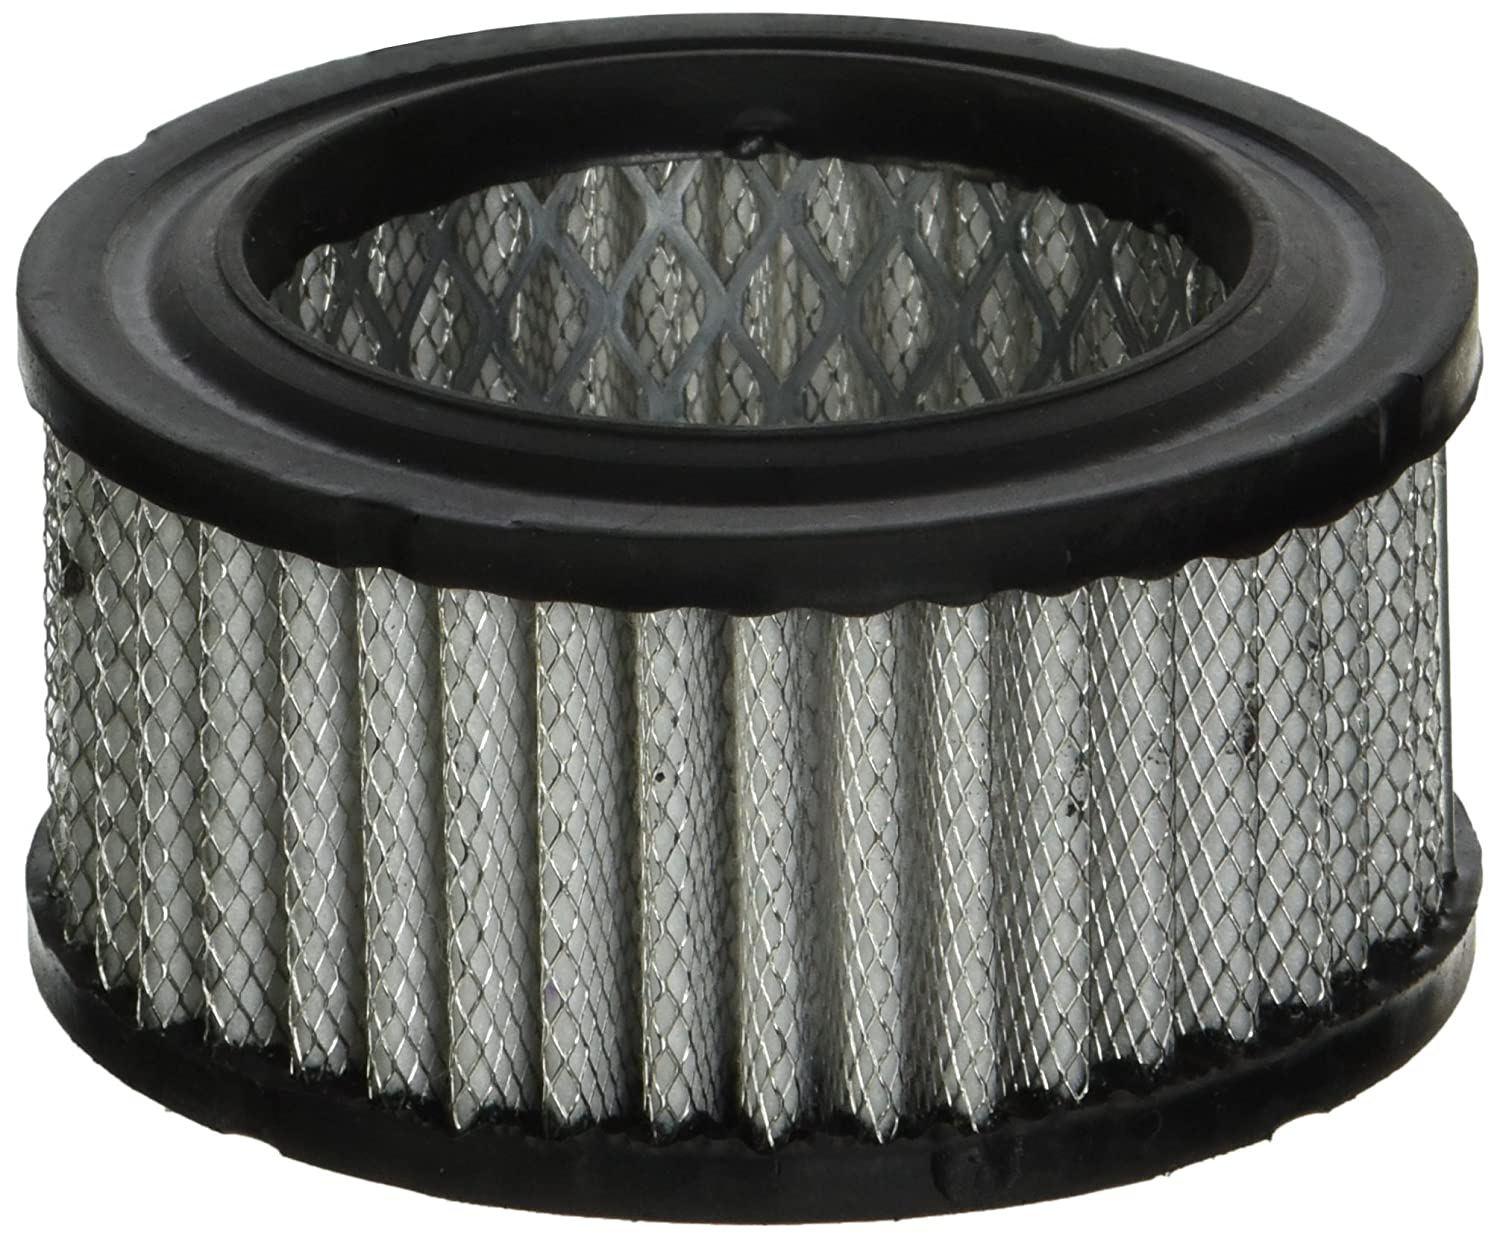 Pack of 6 Killer Filter 102-4108-B Filter Element Replacement for Quincy 111146E100